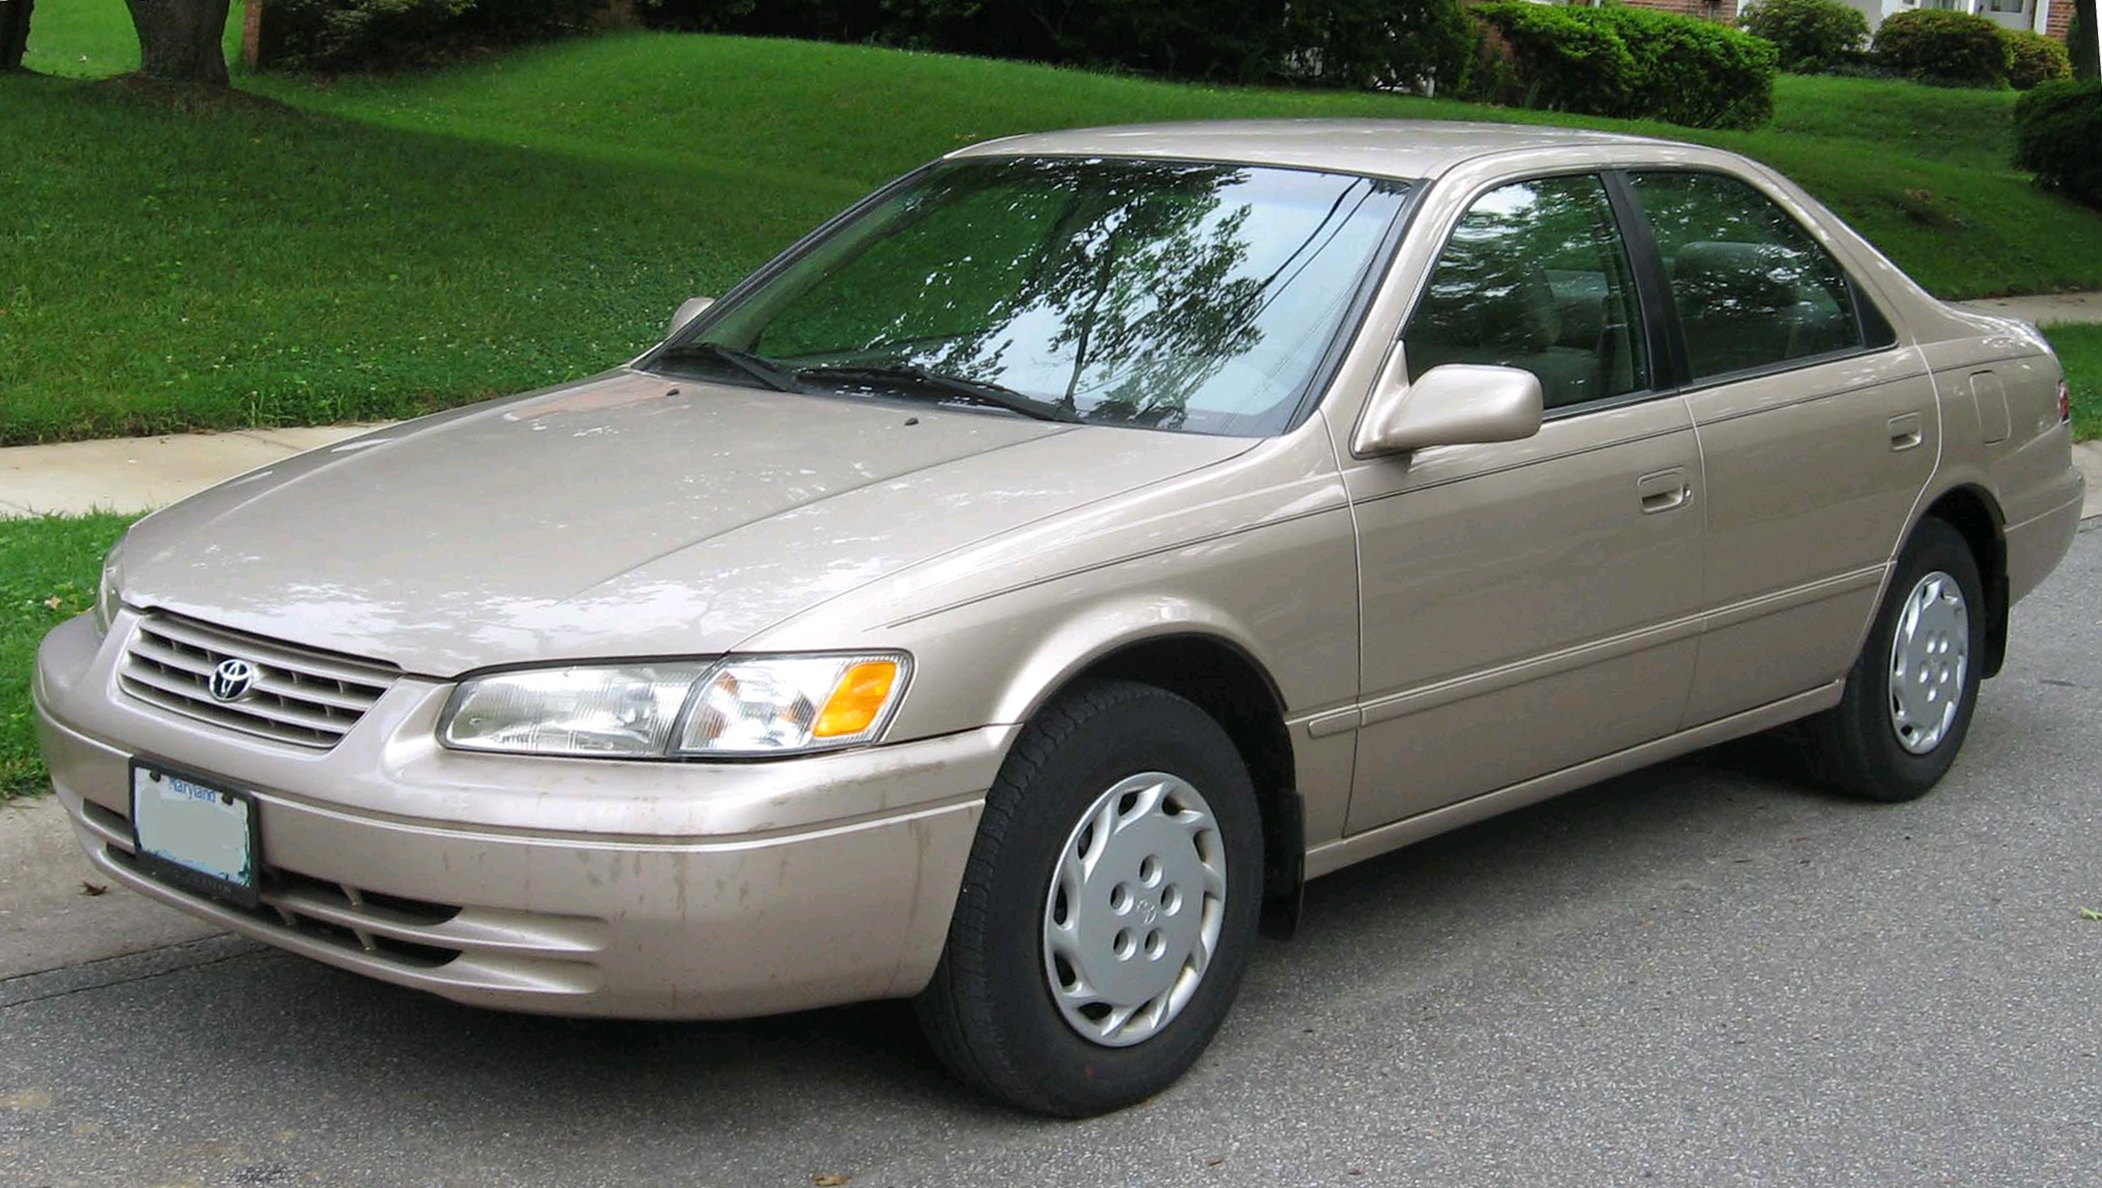 1997 Toyota Vista   pictures, information and specs - Auto